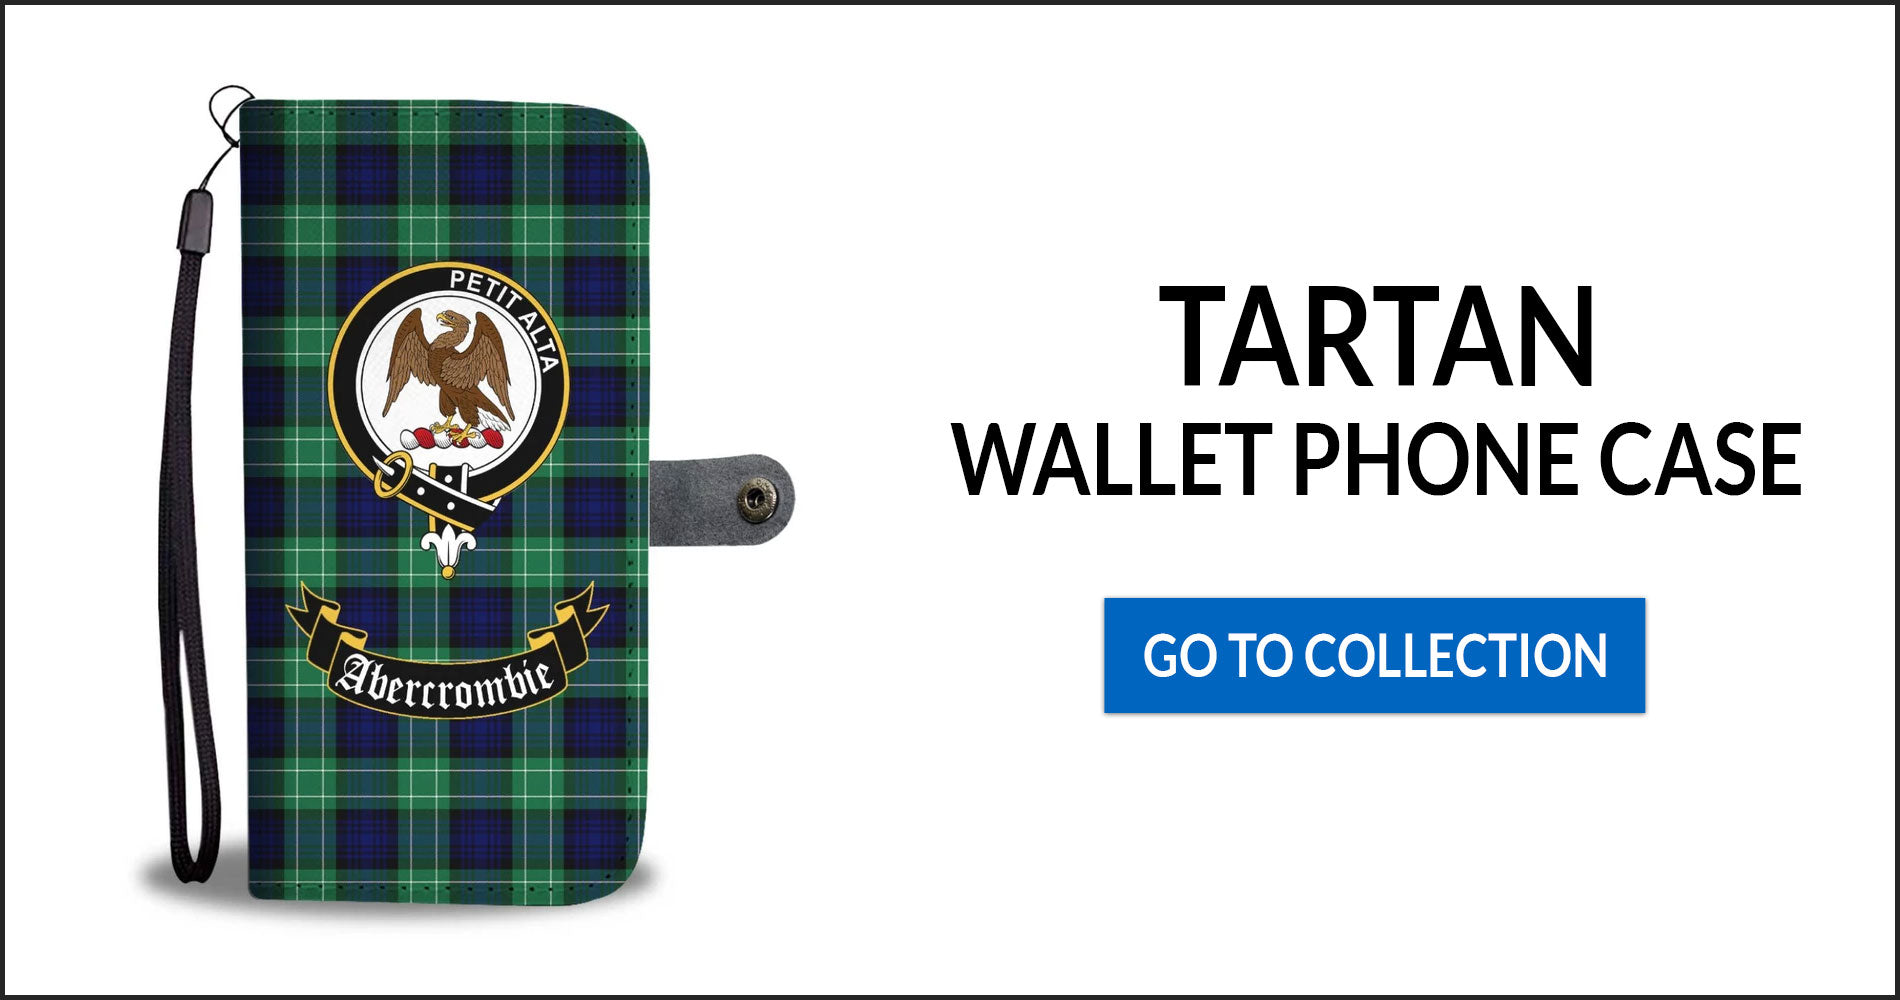 Tartan Wallet Phone Cases